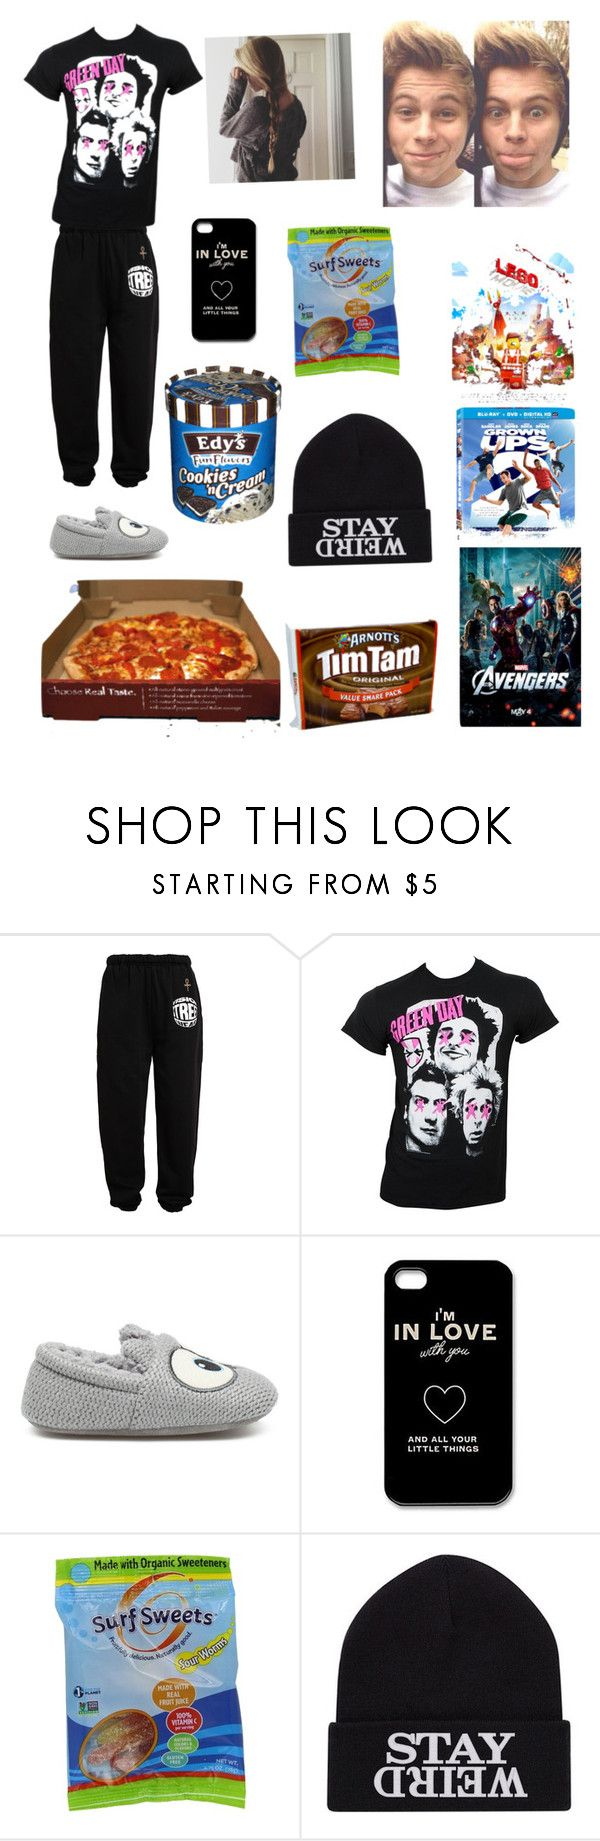 """Lazy day with Luke❤"" by hemmingsluver07 ❤ liked on Polyvore featuring Vision Street Wear, Zara Home, Disney and Marvel"